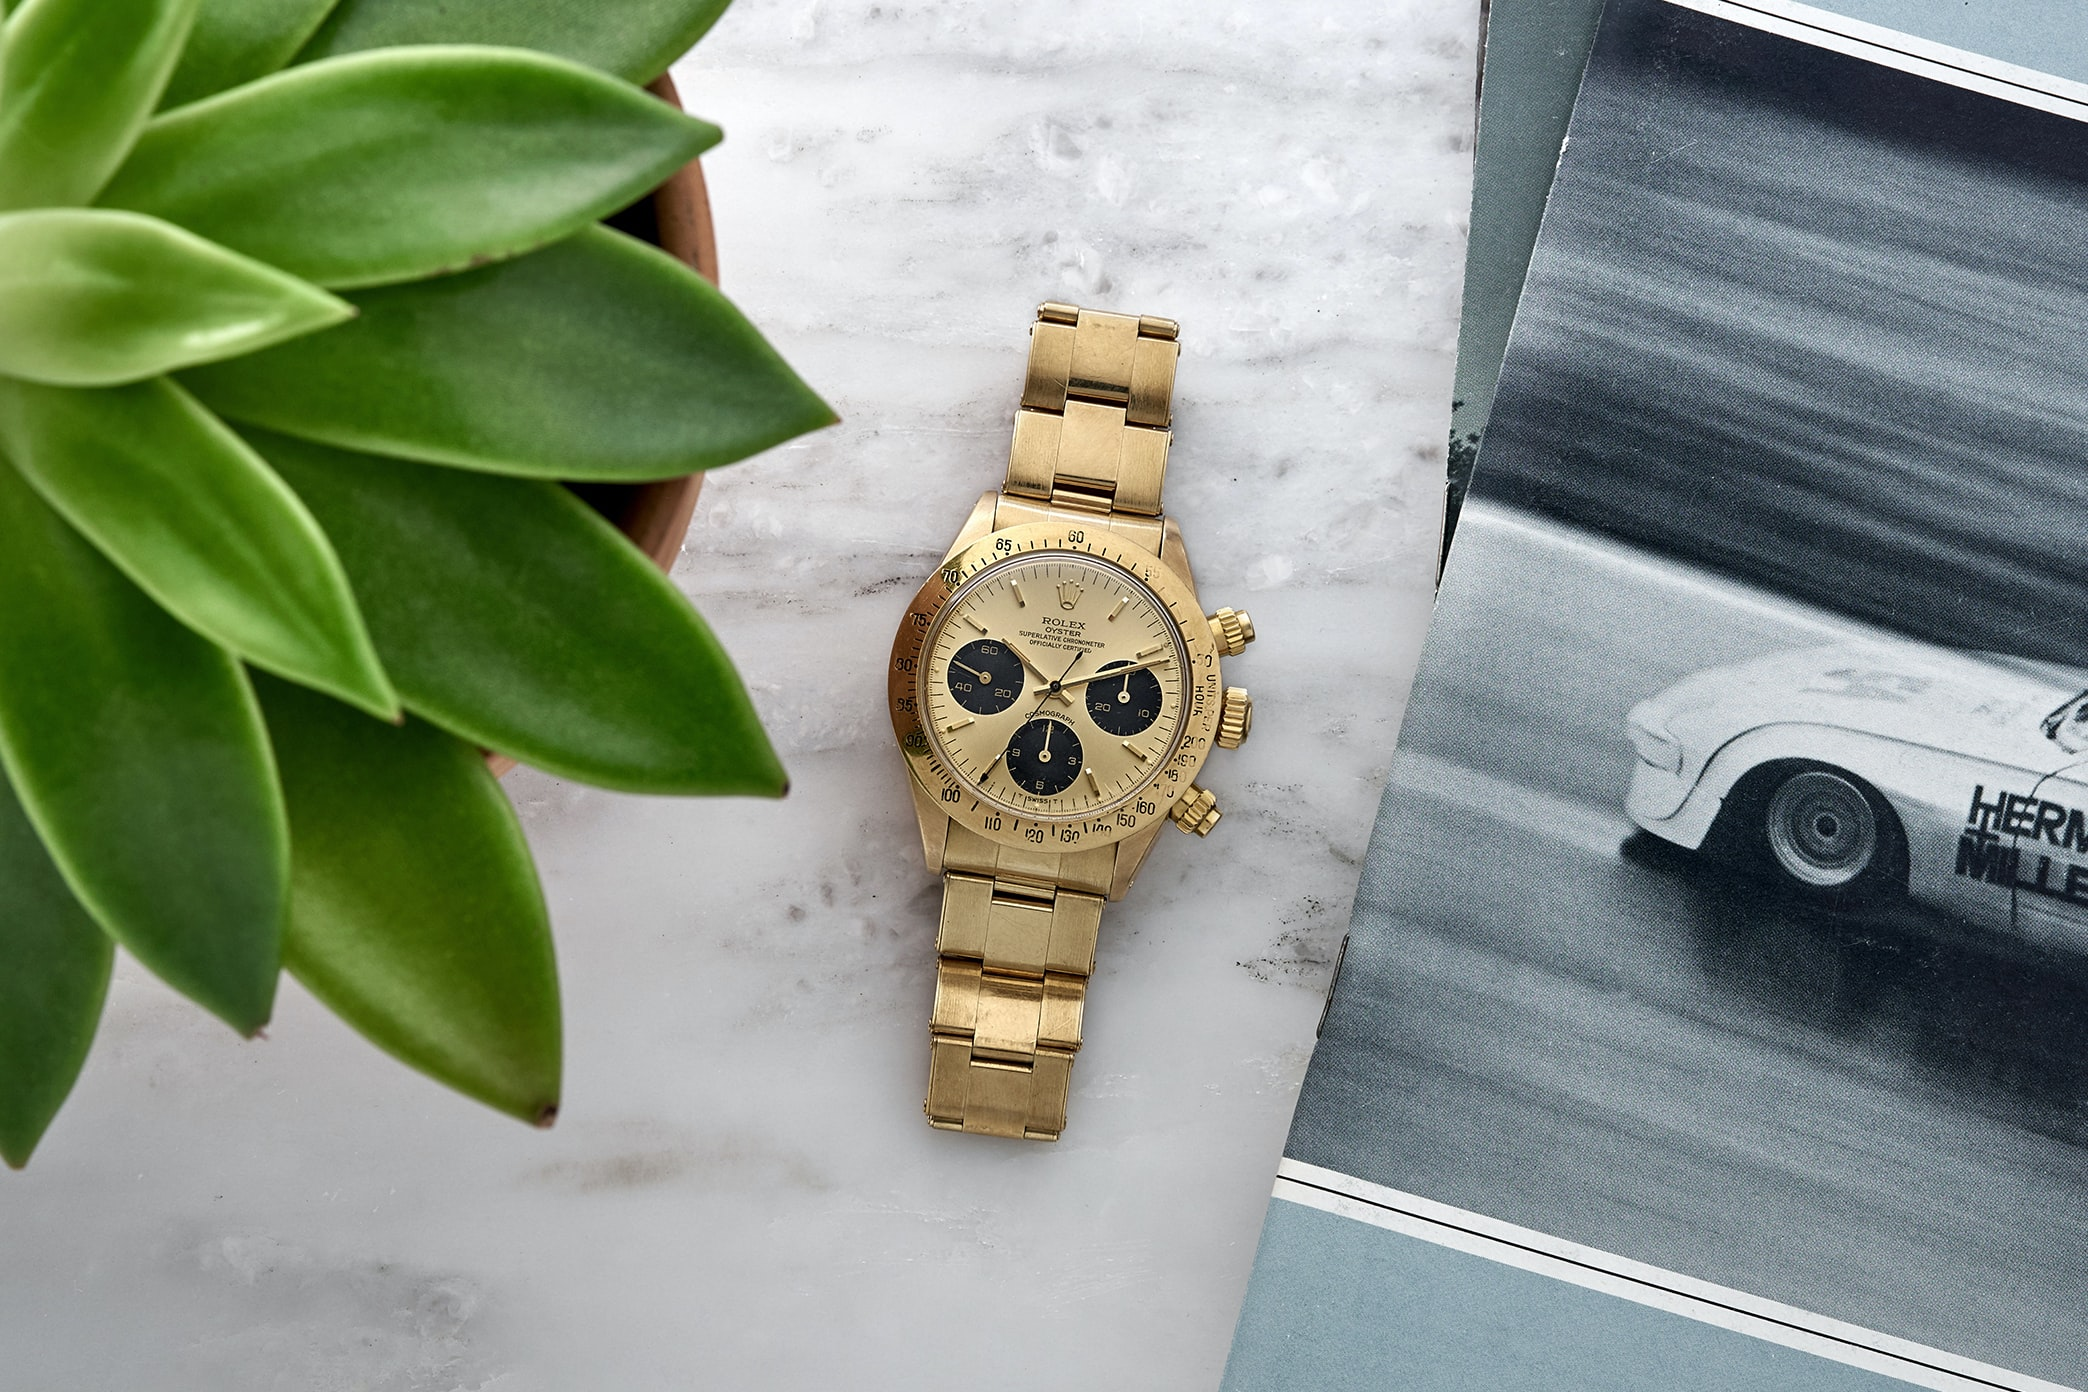 835 rolexdaytona6265 landscape.jpg?ixlib=rails 1.1 in the shop: a 1978 rolex daytona ref. 6265 in 14k yellow gold, a 1960s heuer carrera ref. 3647n, and a 1940s universal genve compax In The Shop: A 1978 Rolex Daytona Ref. 6265 In 14K Yellow Gold, A 1960s Heuer Carrera Ref. 3647N, And A 1940s Universal Genve Compax 835 RolexDaytona6265 LANDSCAPE